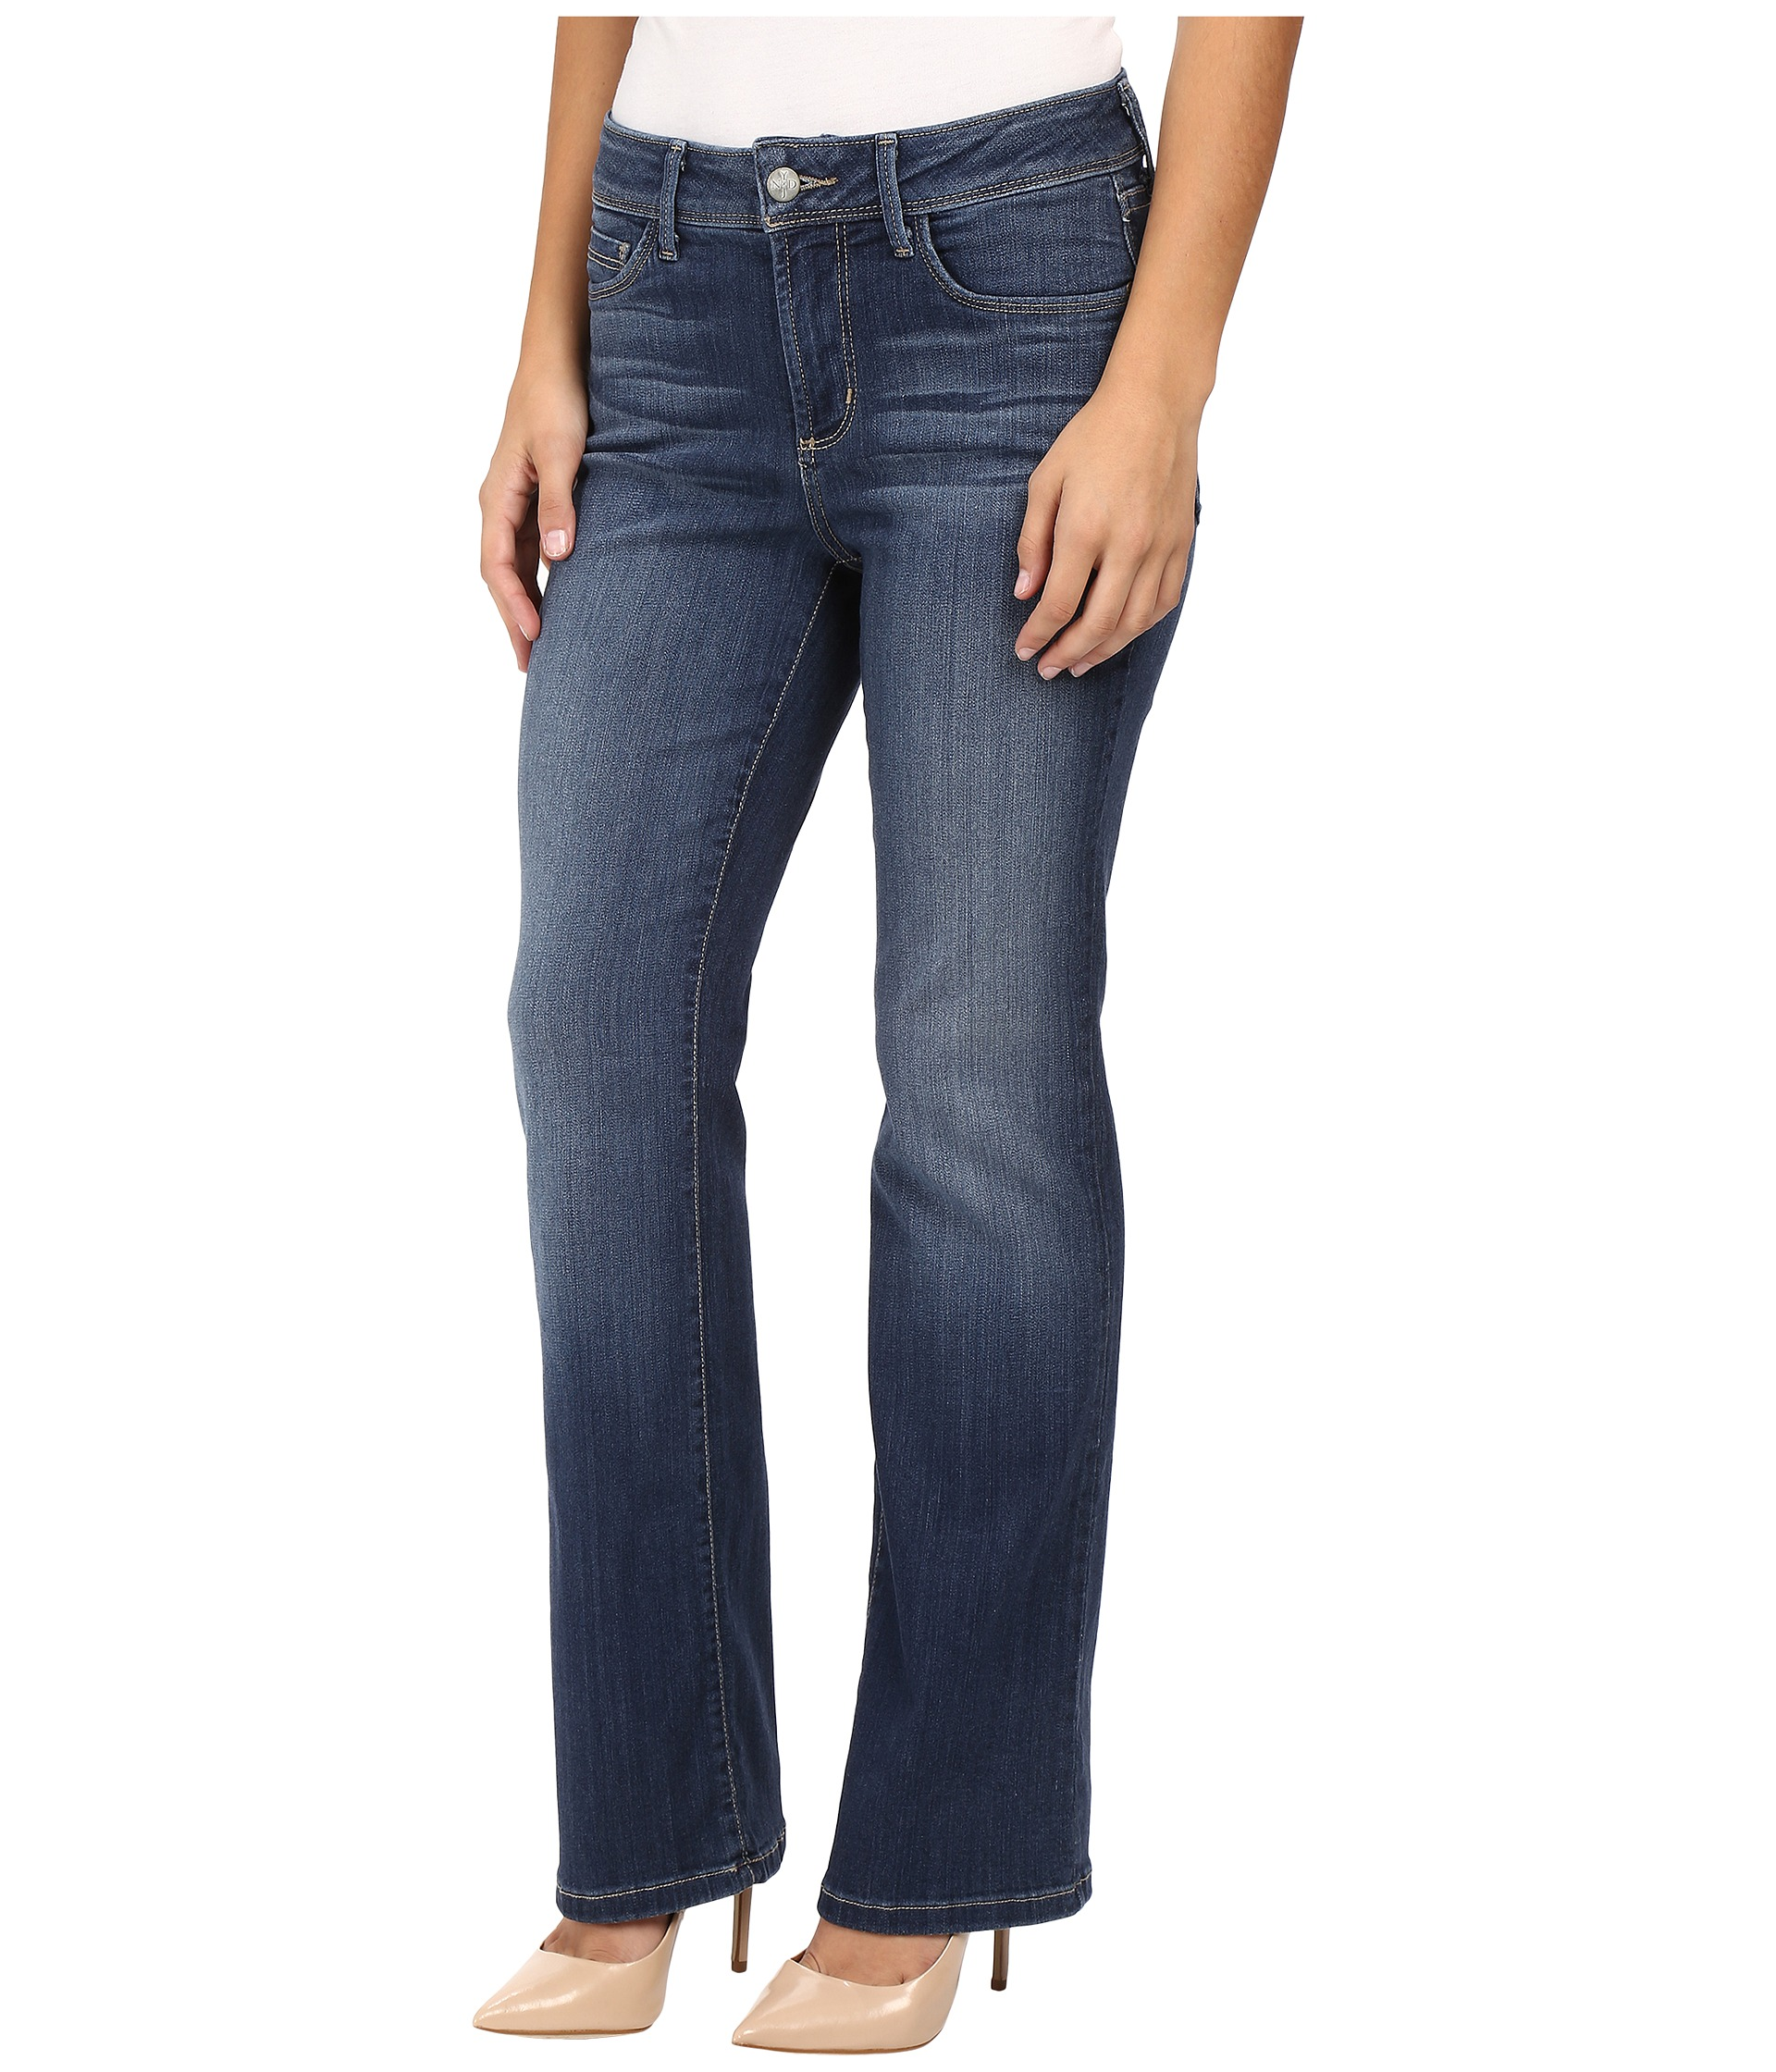 ★NYDJ Alina Pull-On Ankle Skinny Jeans (Regular & Petite) (Rinse)★ Check price for NYDJ Alina Pull-On Ankle Skinny Jeans (Regular & Petite) (Rinse) get it to day. on-line looking has currently gone an extended means; it's modified the way shoppers and entrepreneurs d.